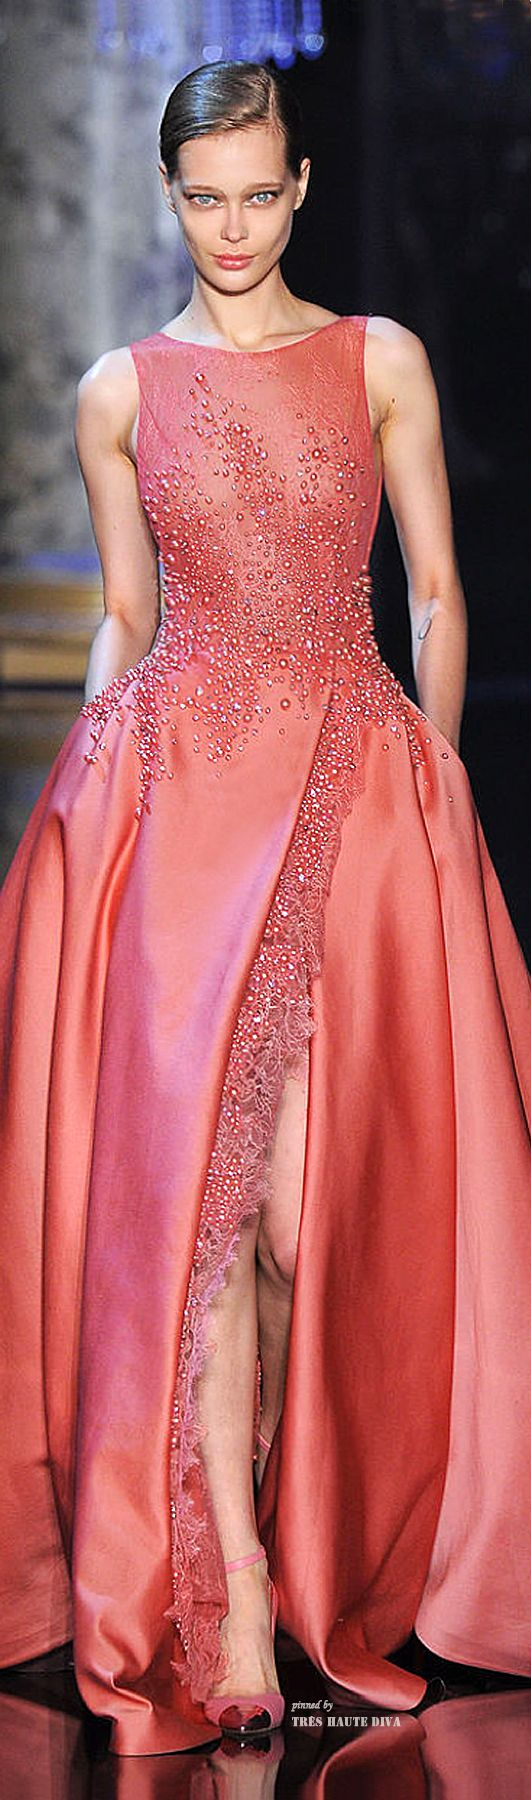 Elie Saab Haute Couture I love the simplicity of this dress and pockets are always a plus.